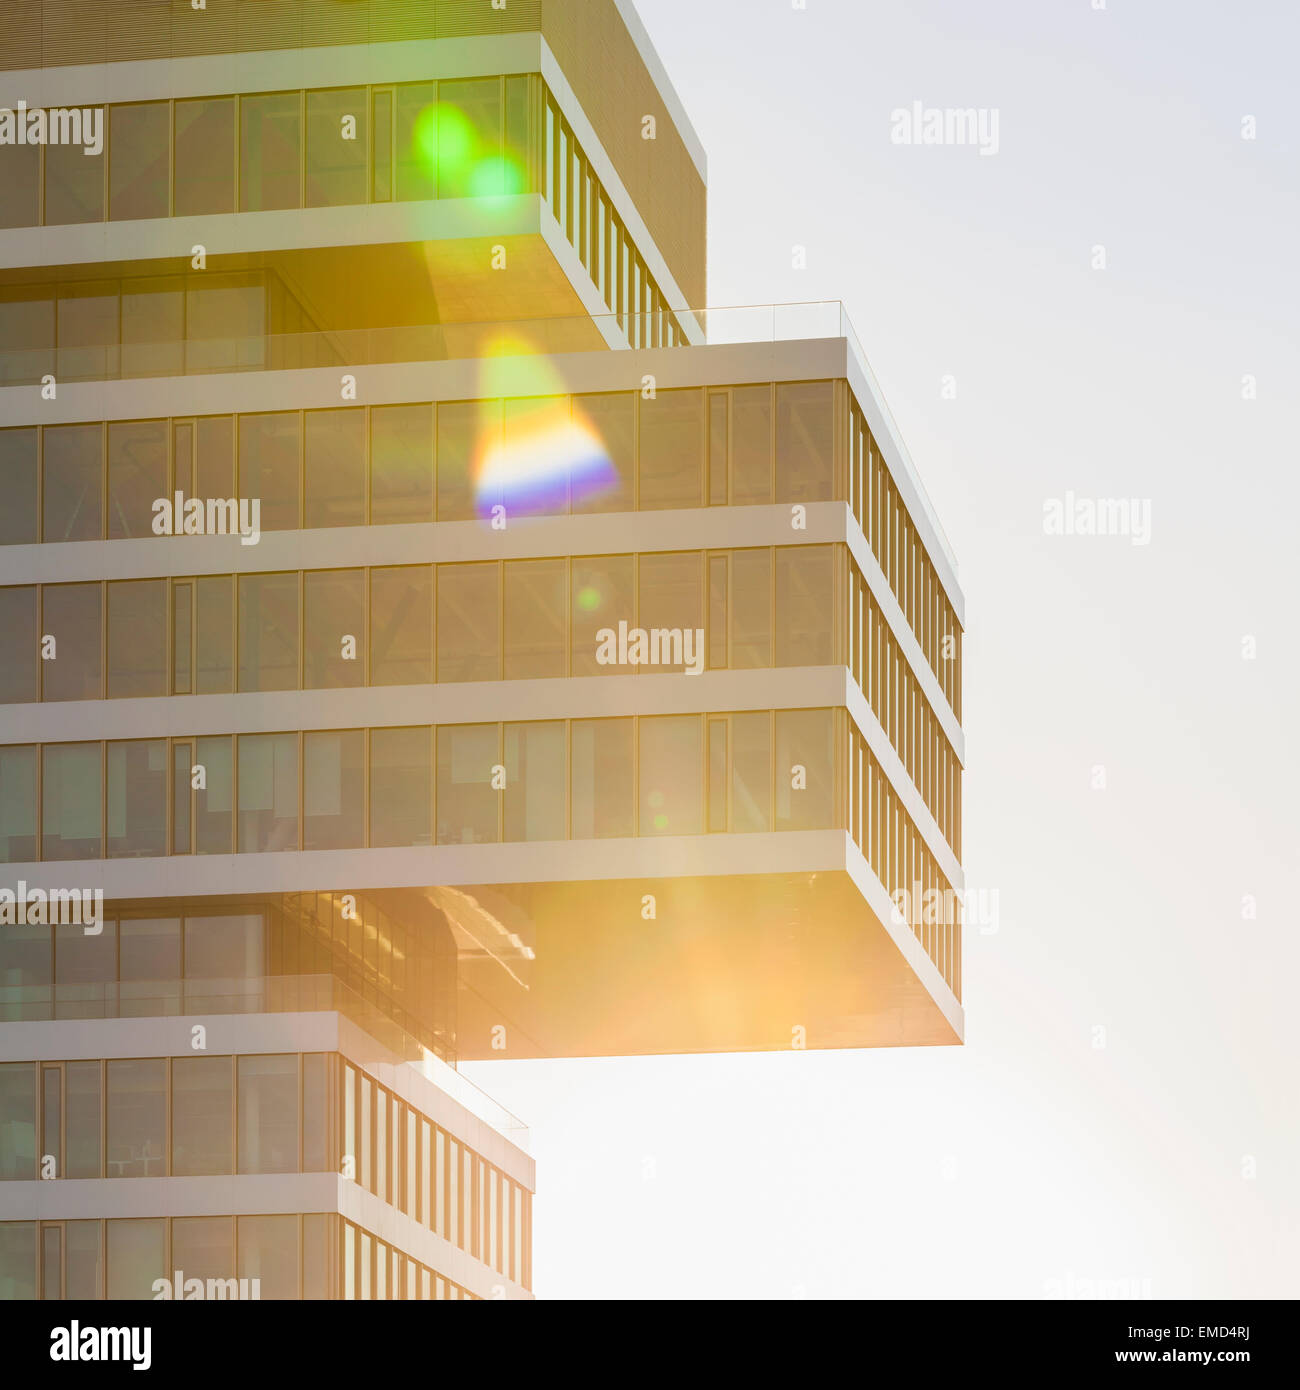 Germany, Renningen, fassade of Center for Research and Advance Development at backlight - Stock Image